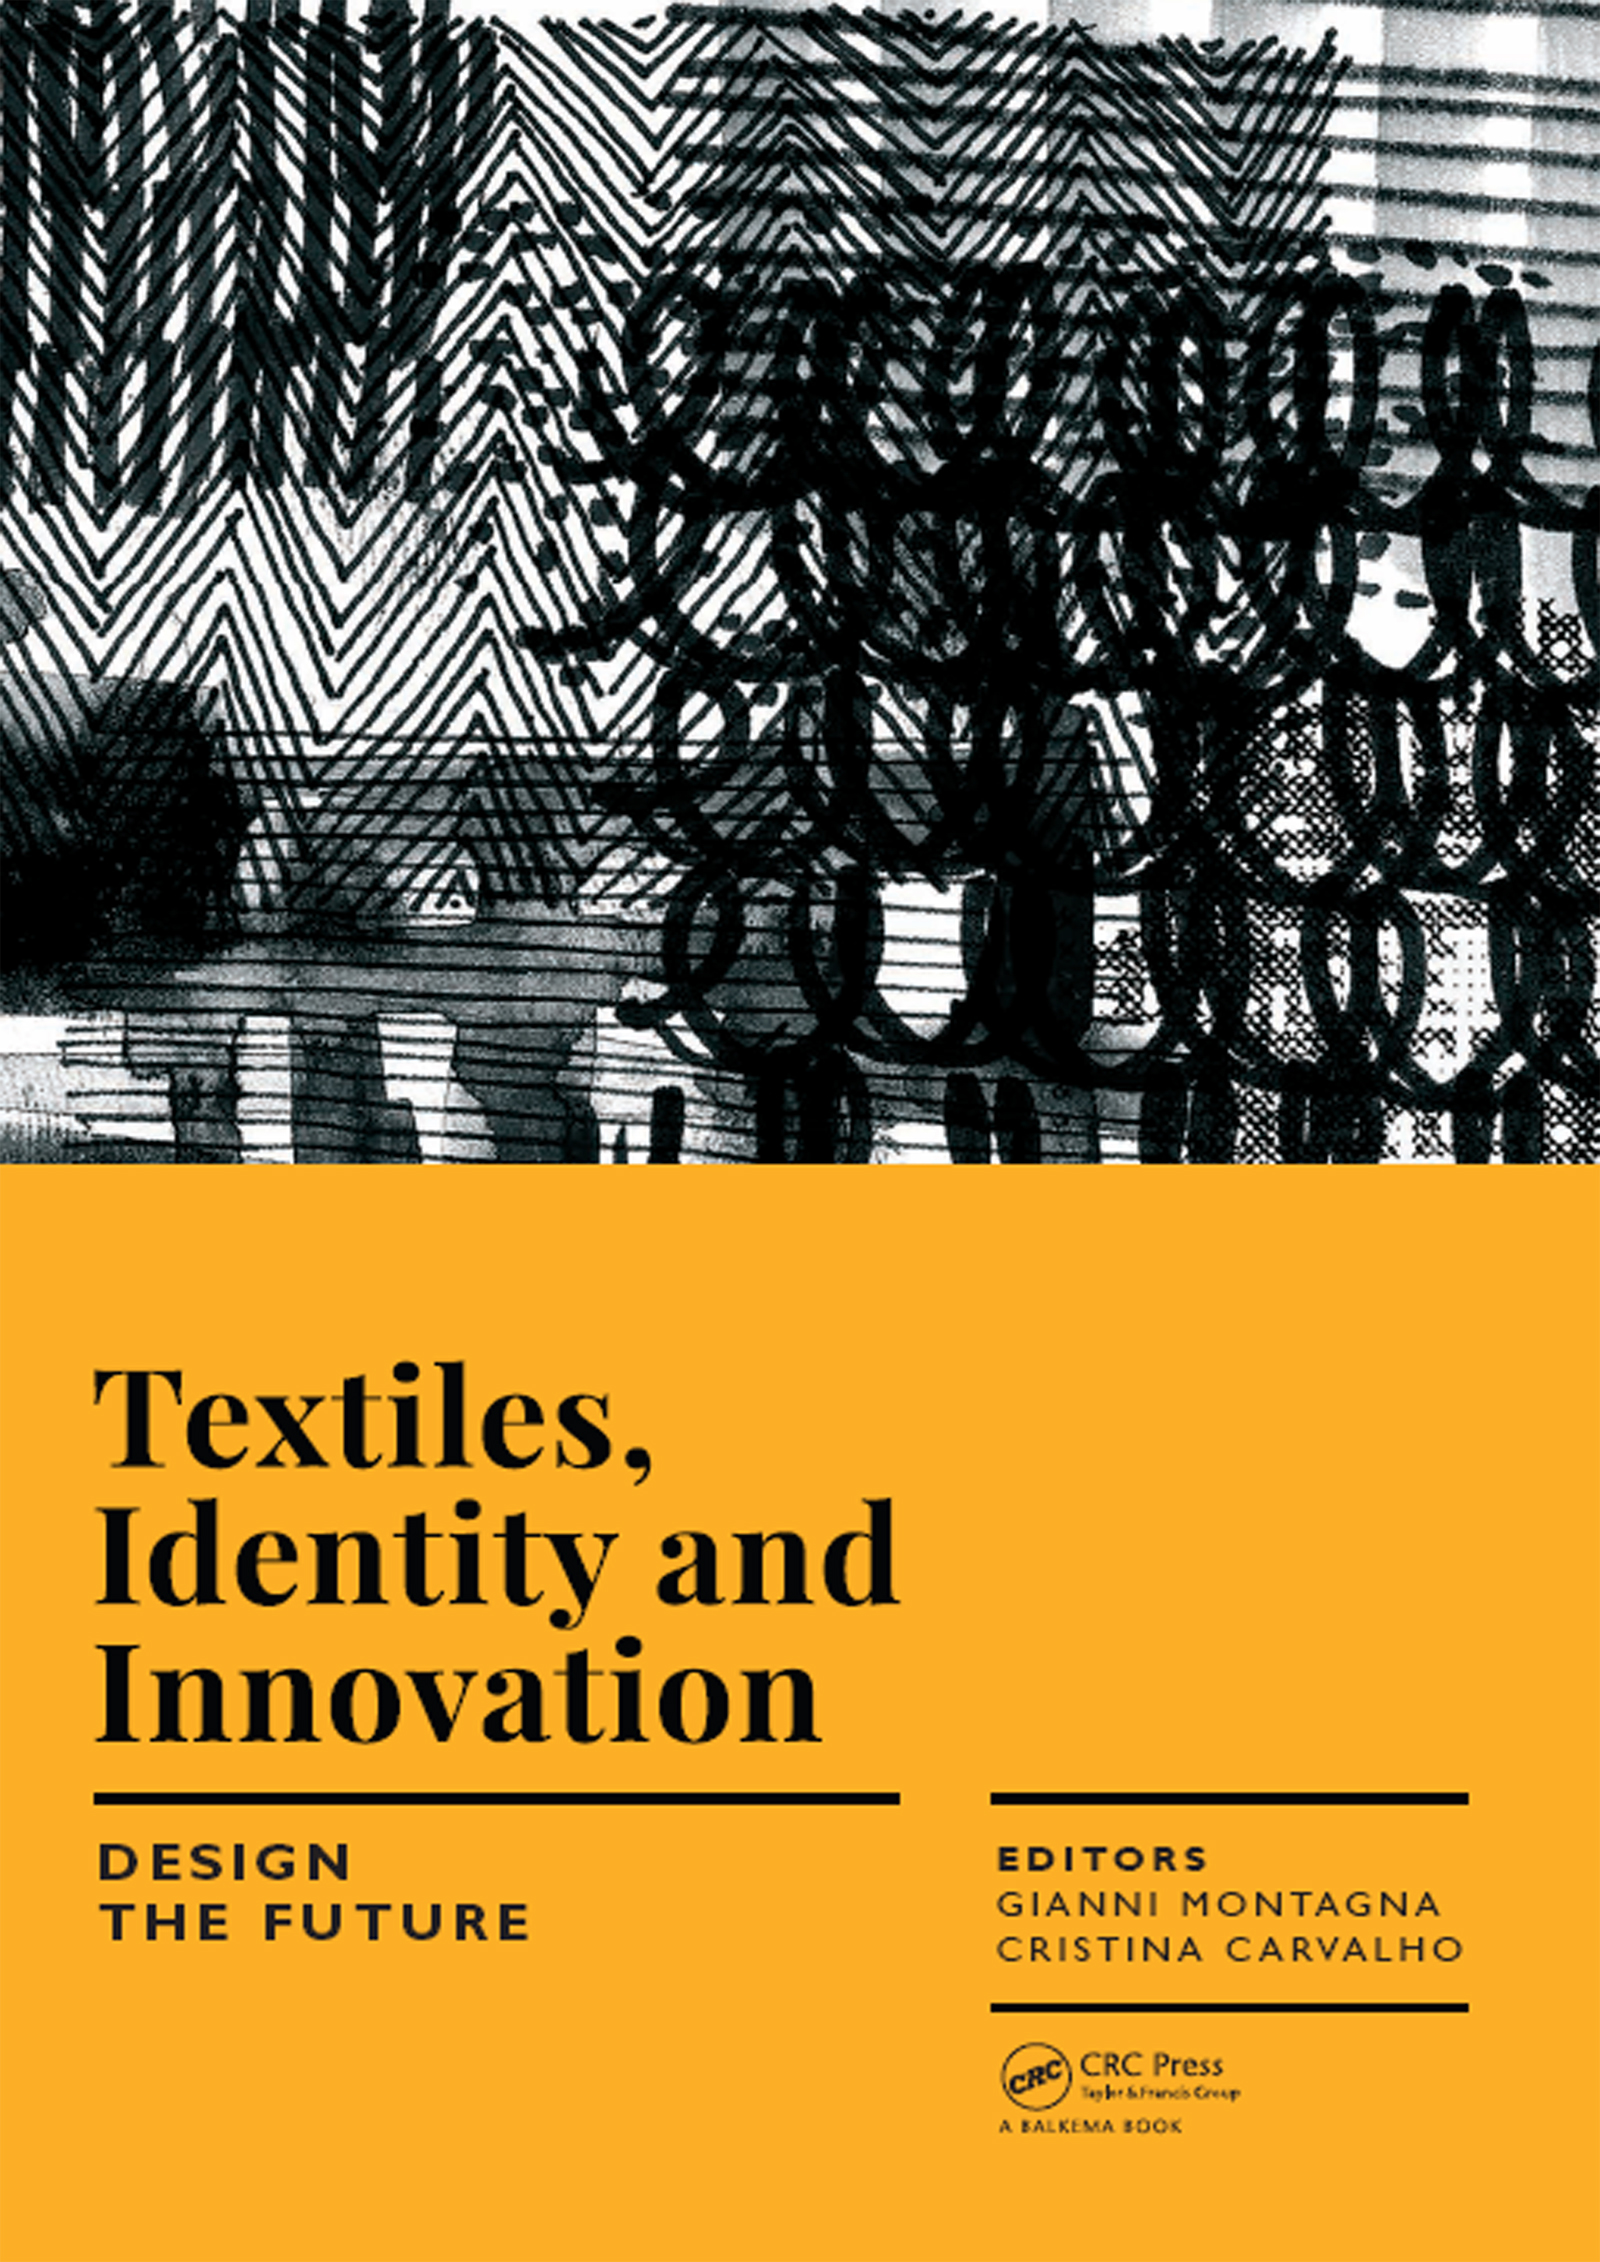 Textiles, Identity and Innovation: Design the Future: Proceedings of the 1st International Textile Design Conference (D_TEX 2017), November 2-4, 2017, Lisbon, Portugal (Hardback) book cover